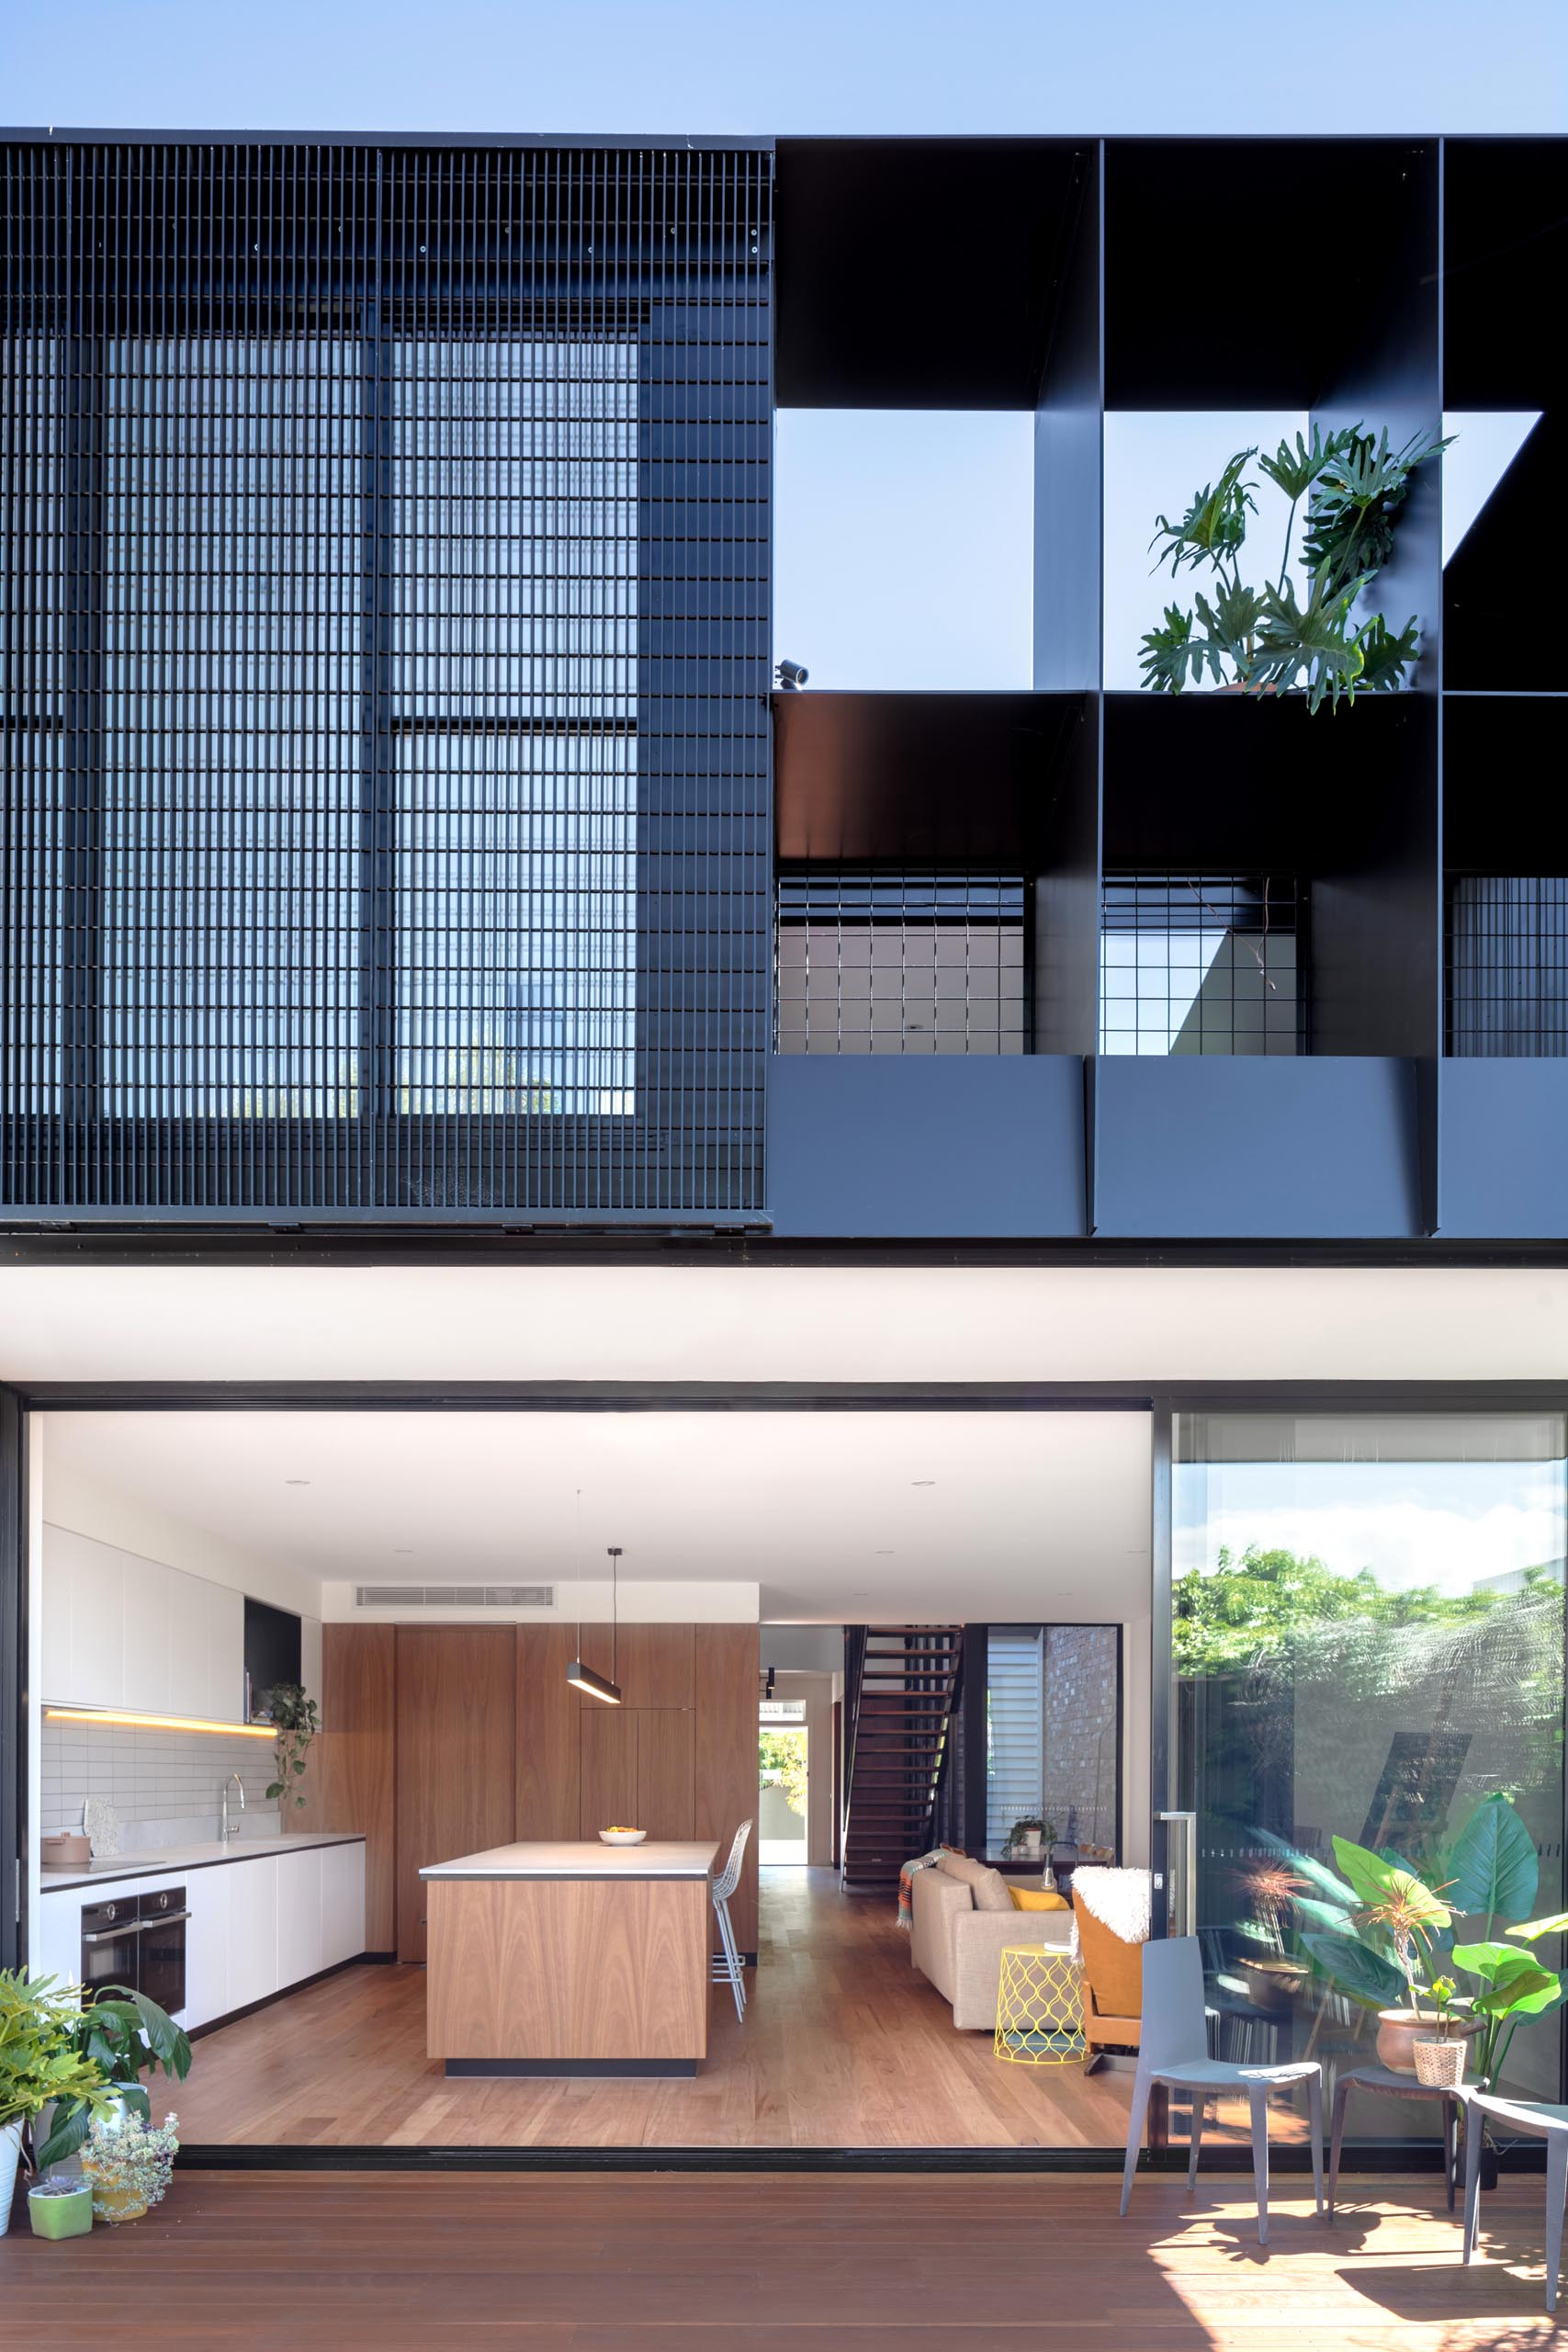 A modern house extension with a sliding glass wall that opens to the backyard, which provides a view of the rear dark gray corrugated metal addition.